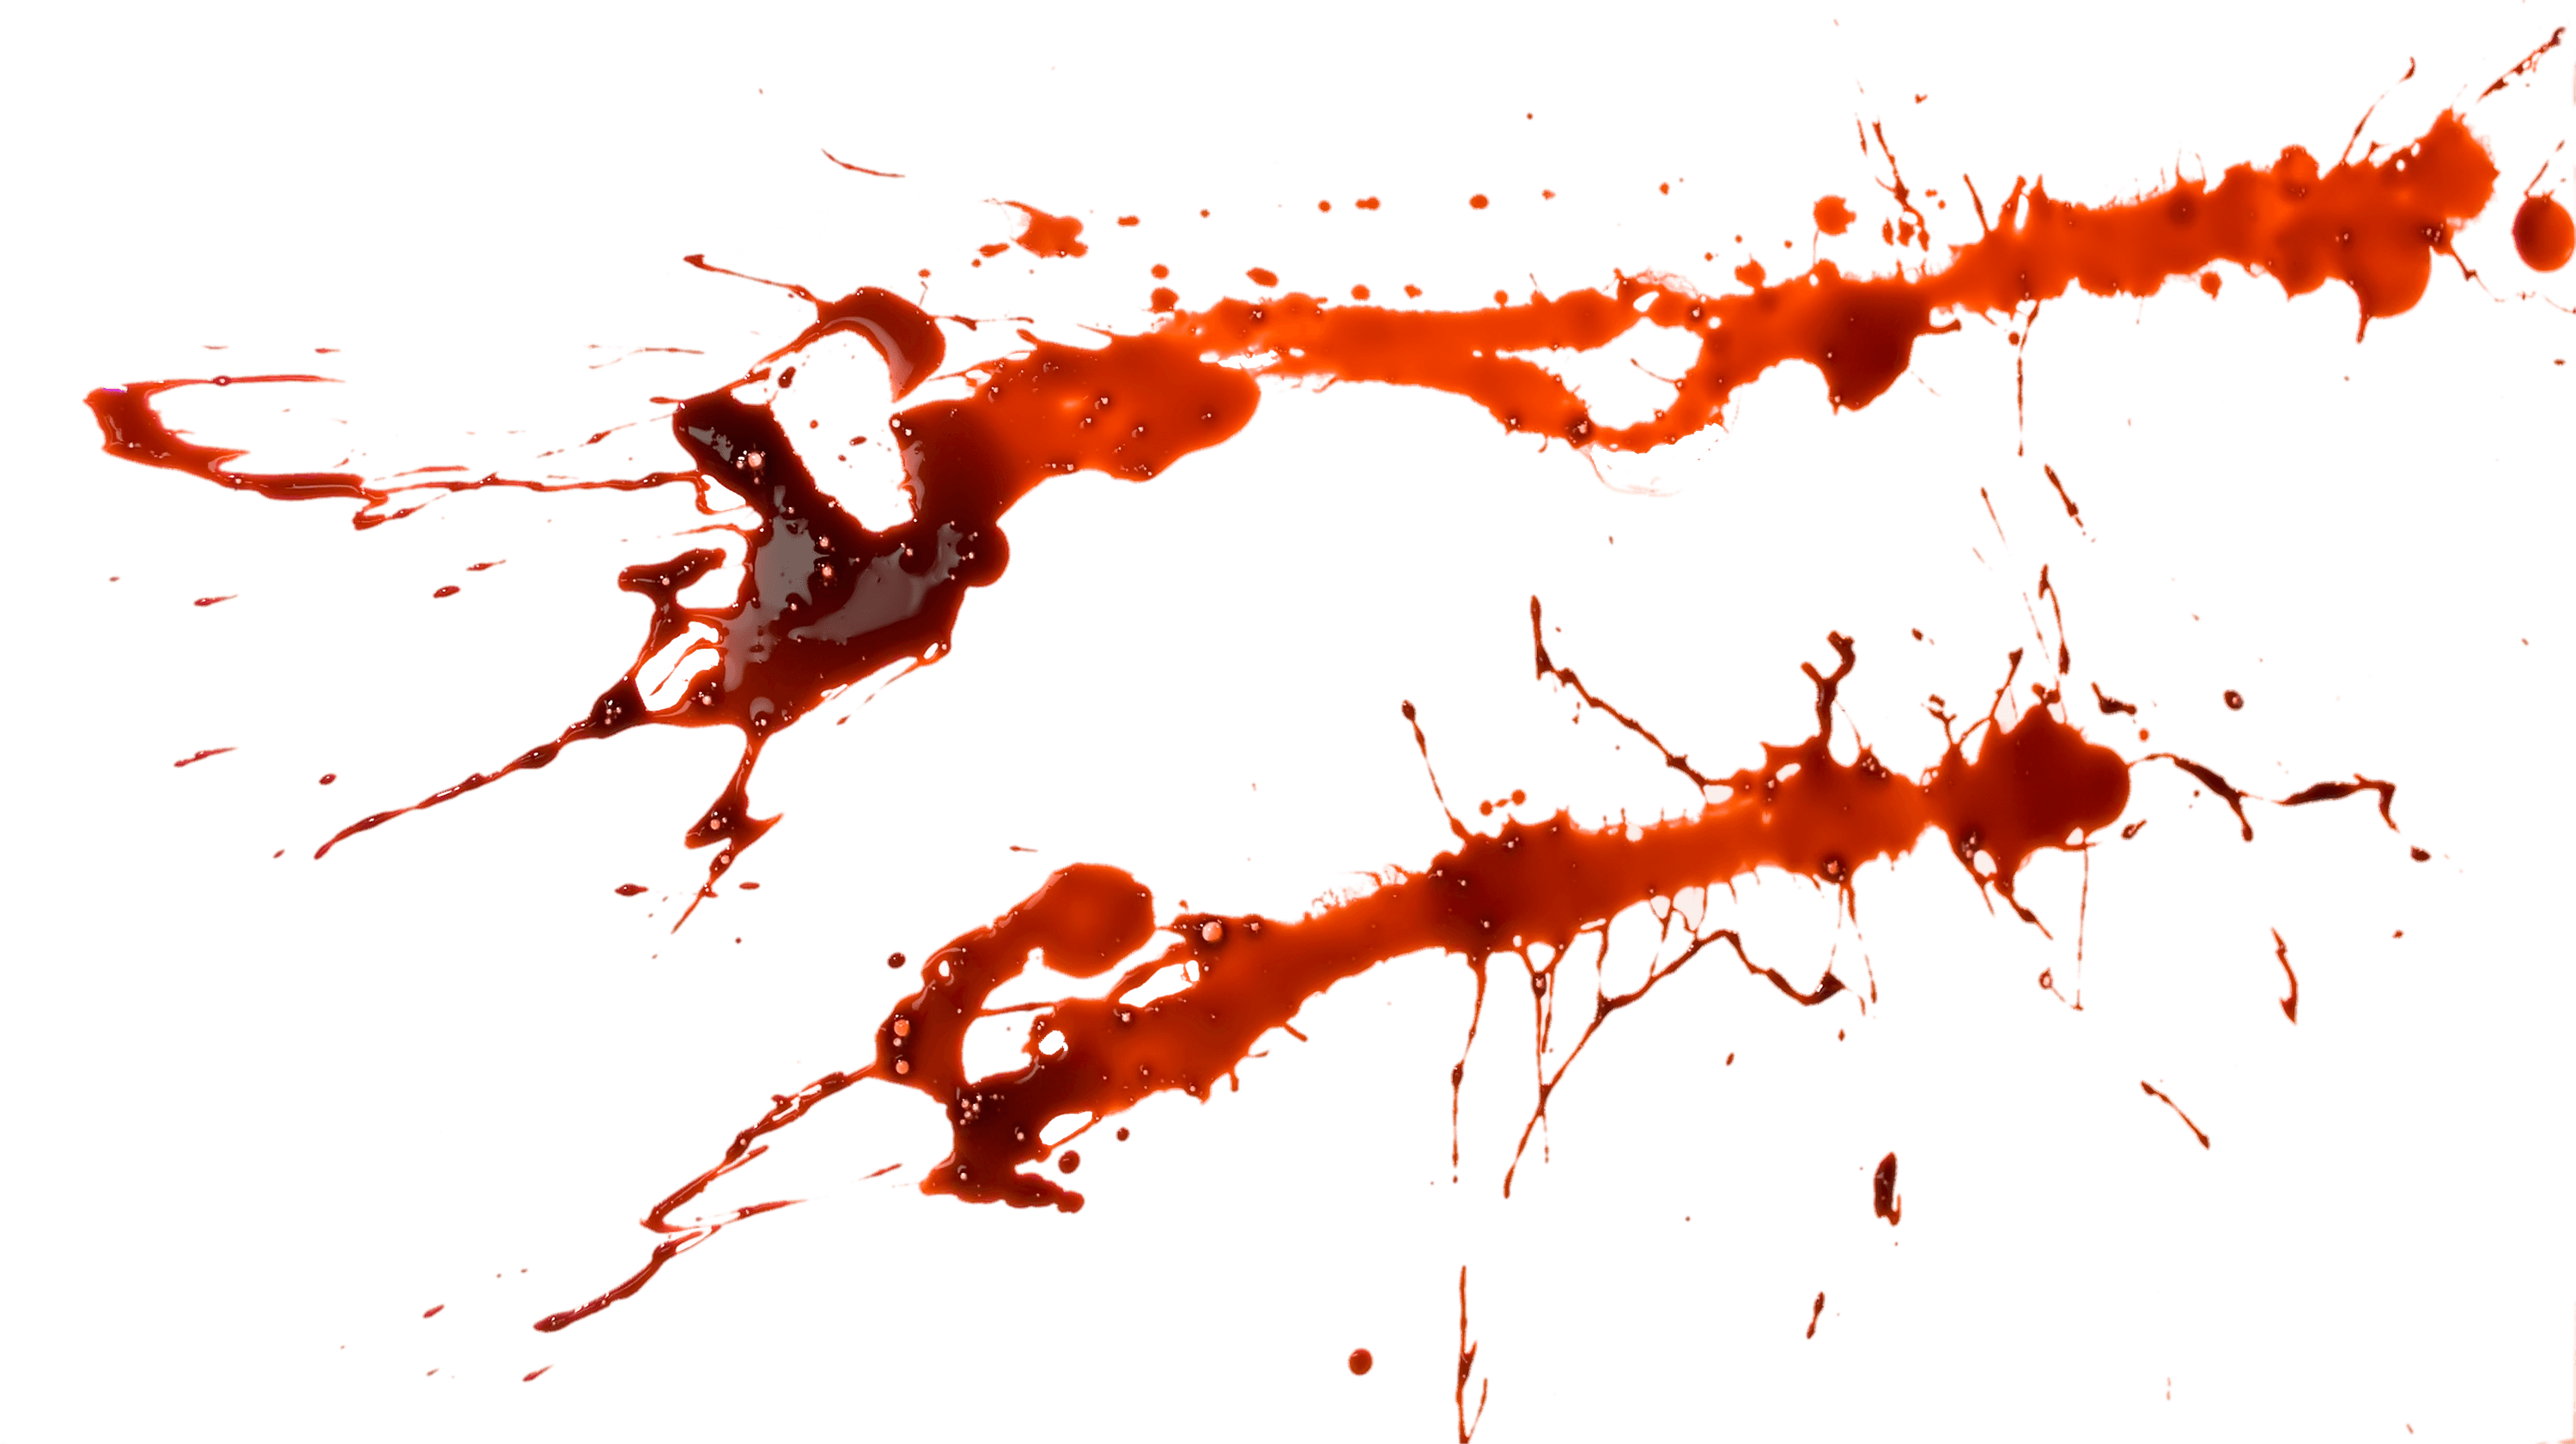 Dripping Blood PNG - 170434